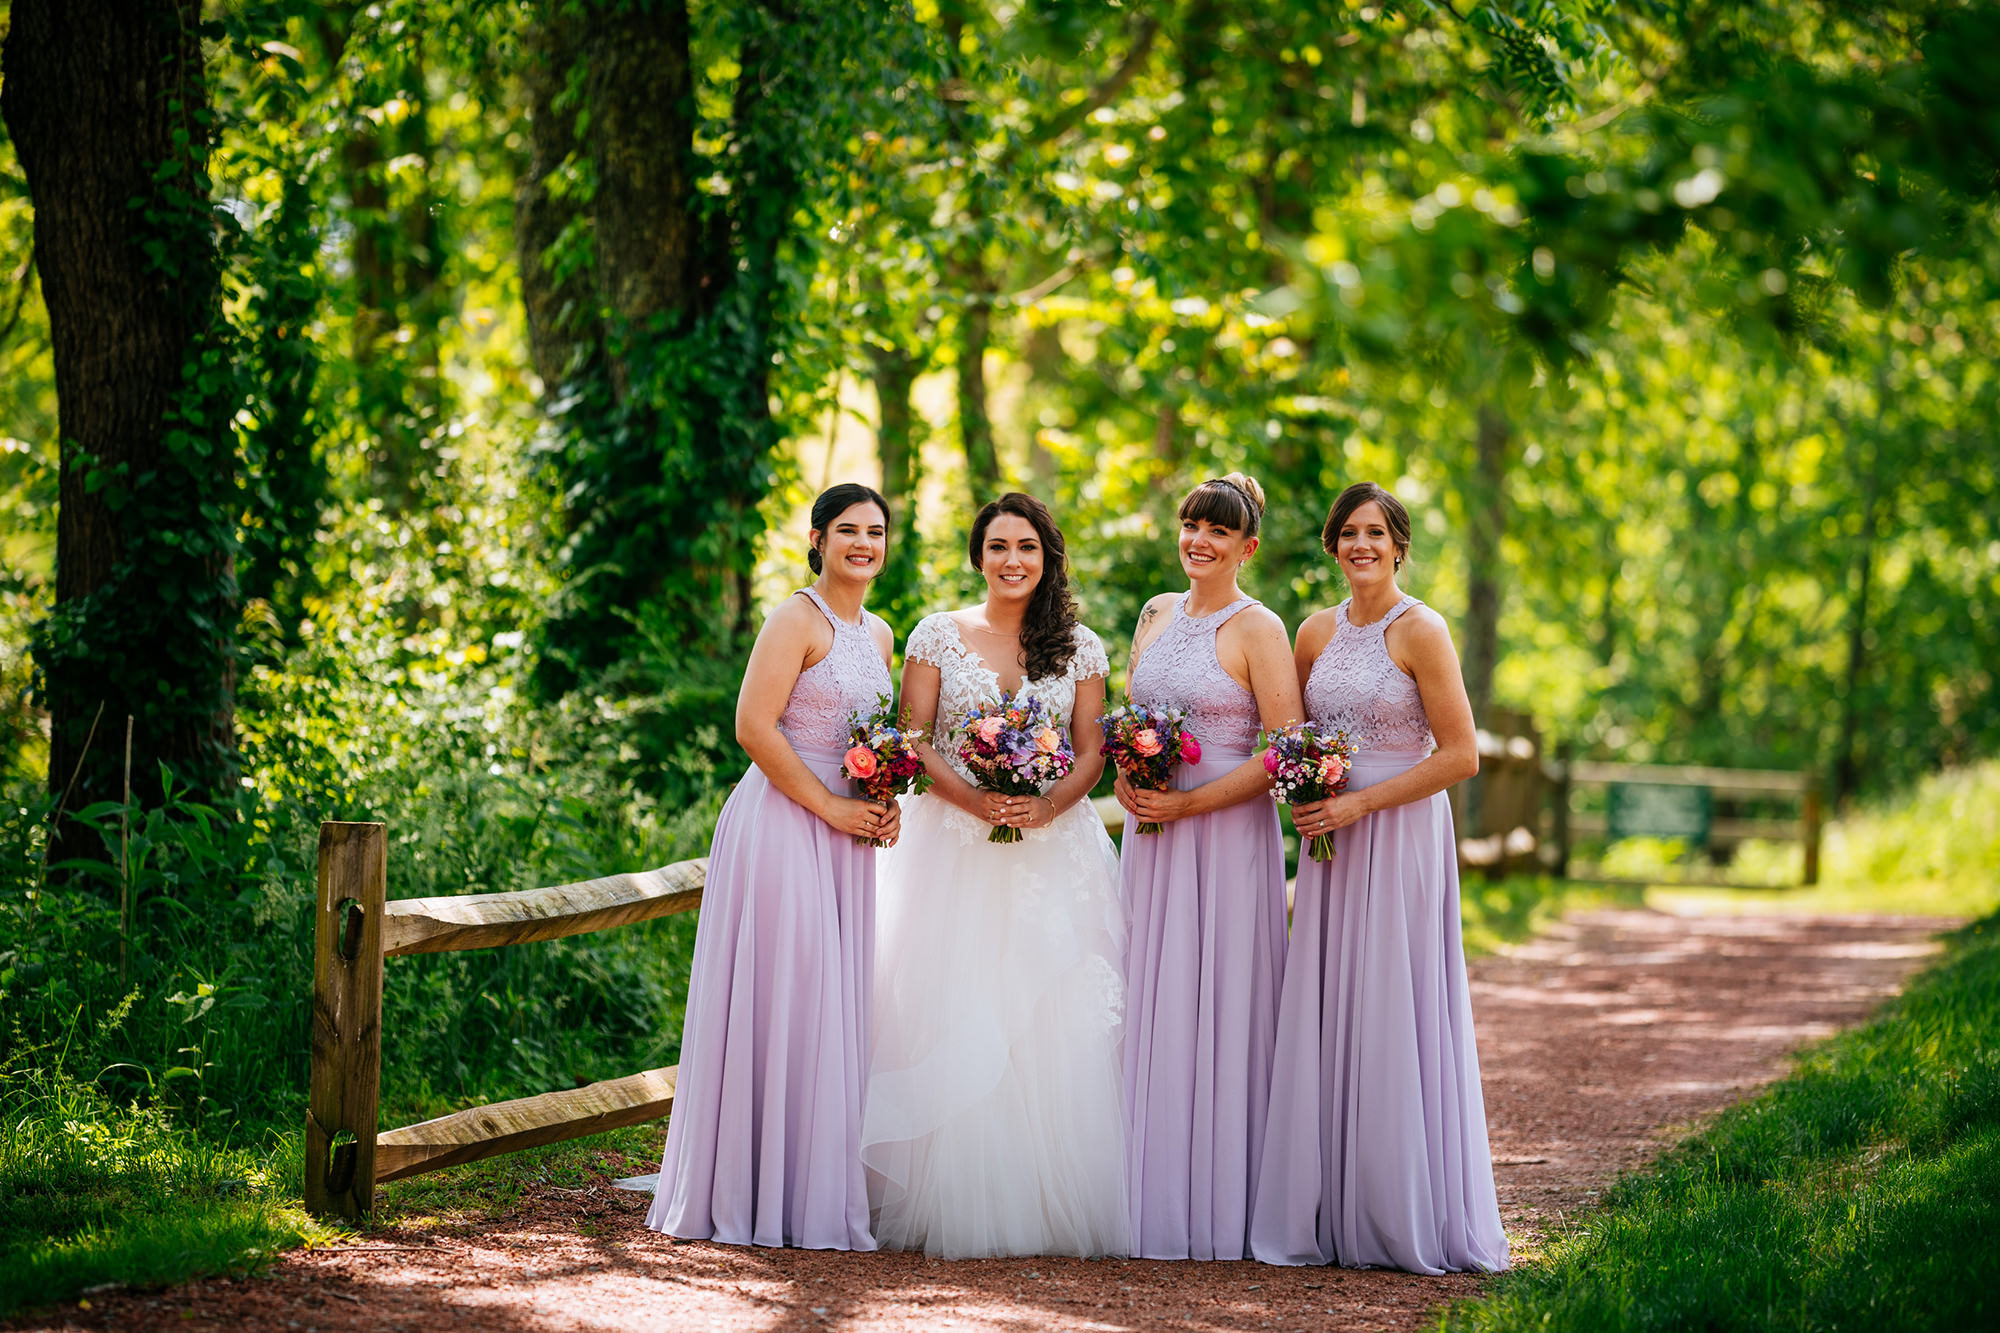 outdoors bridal party photo